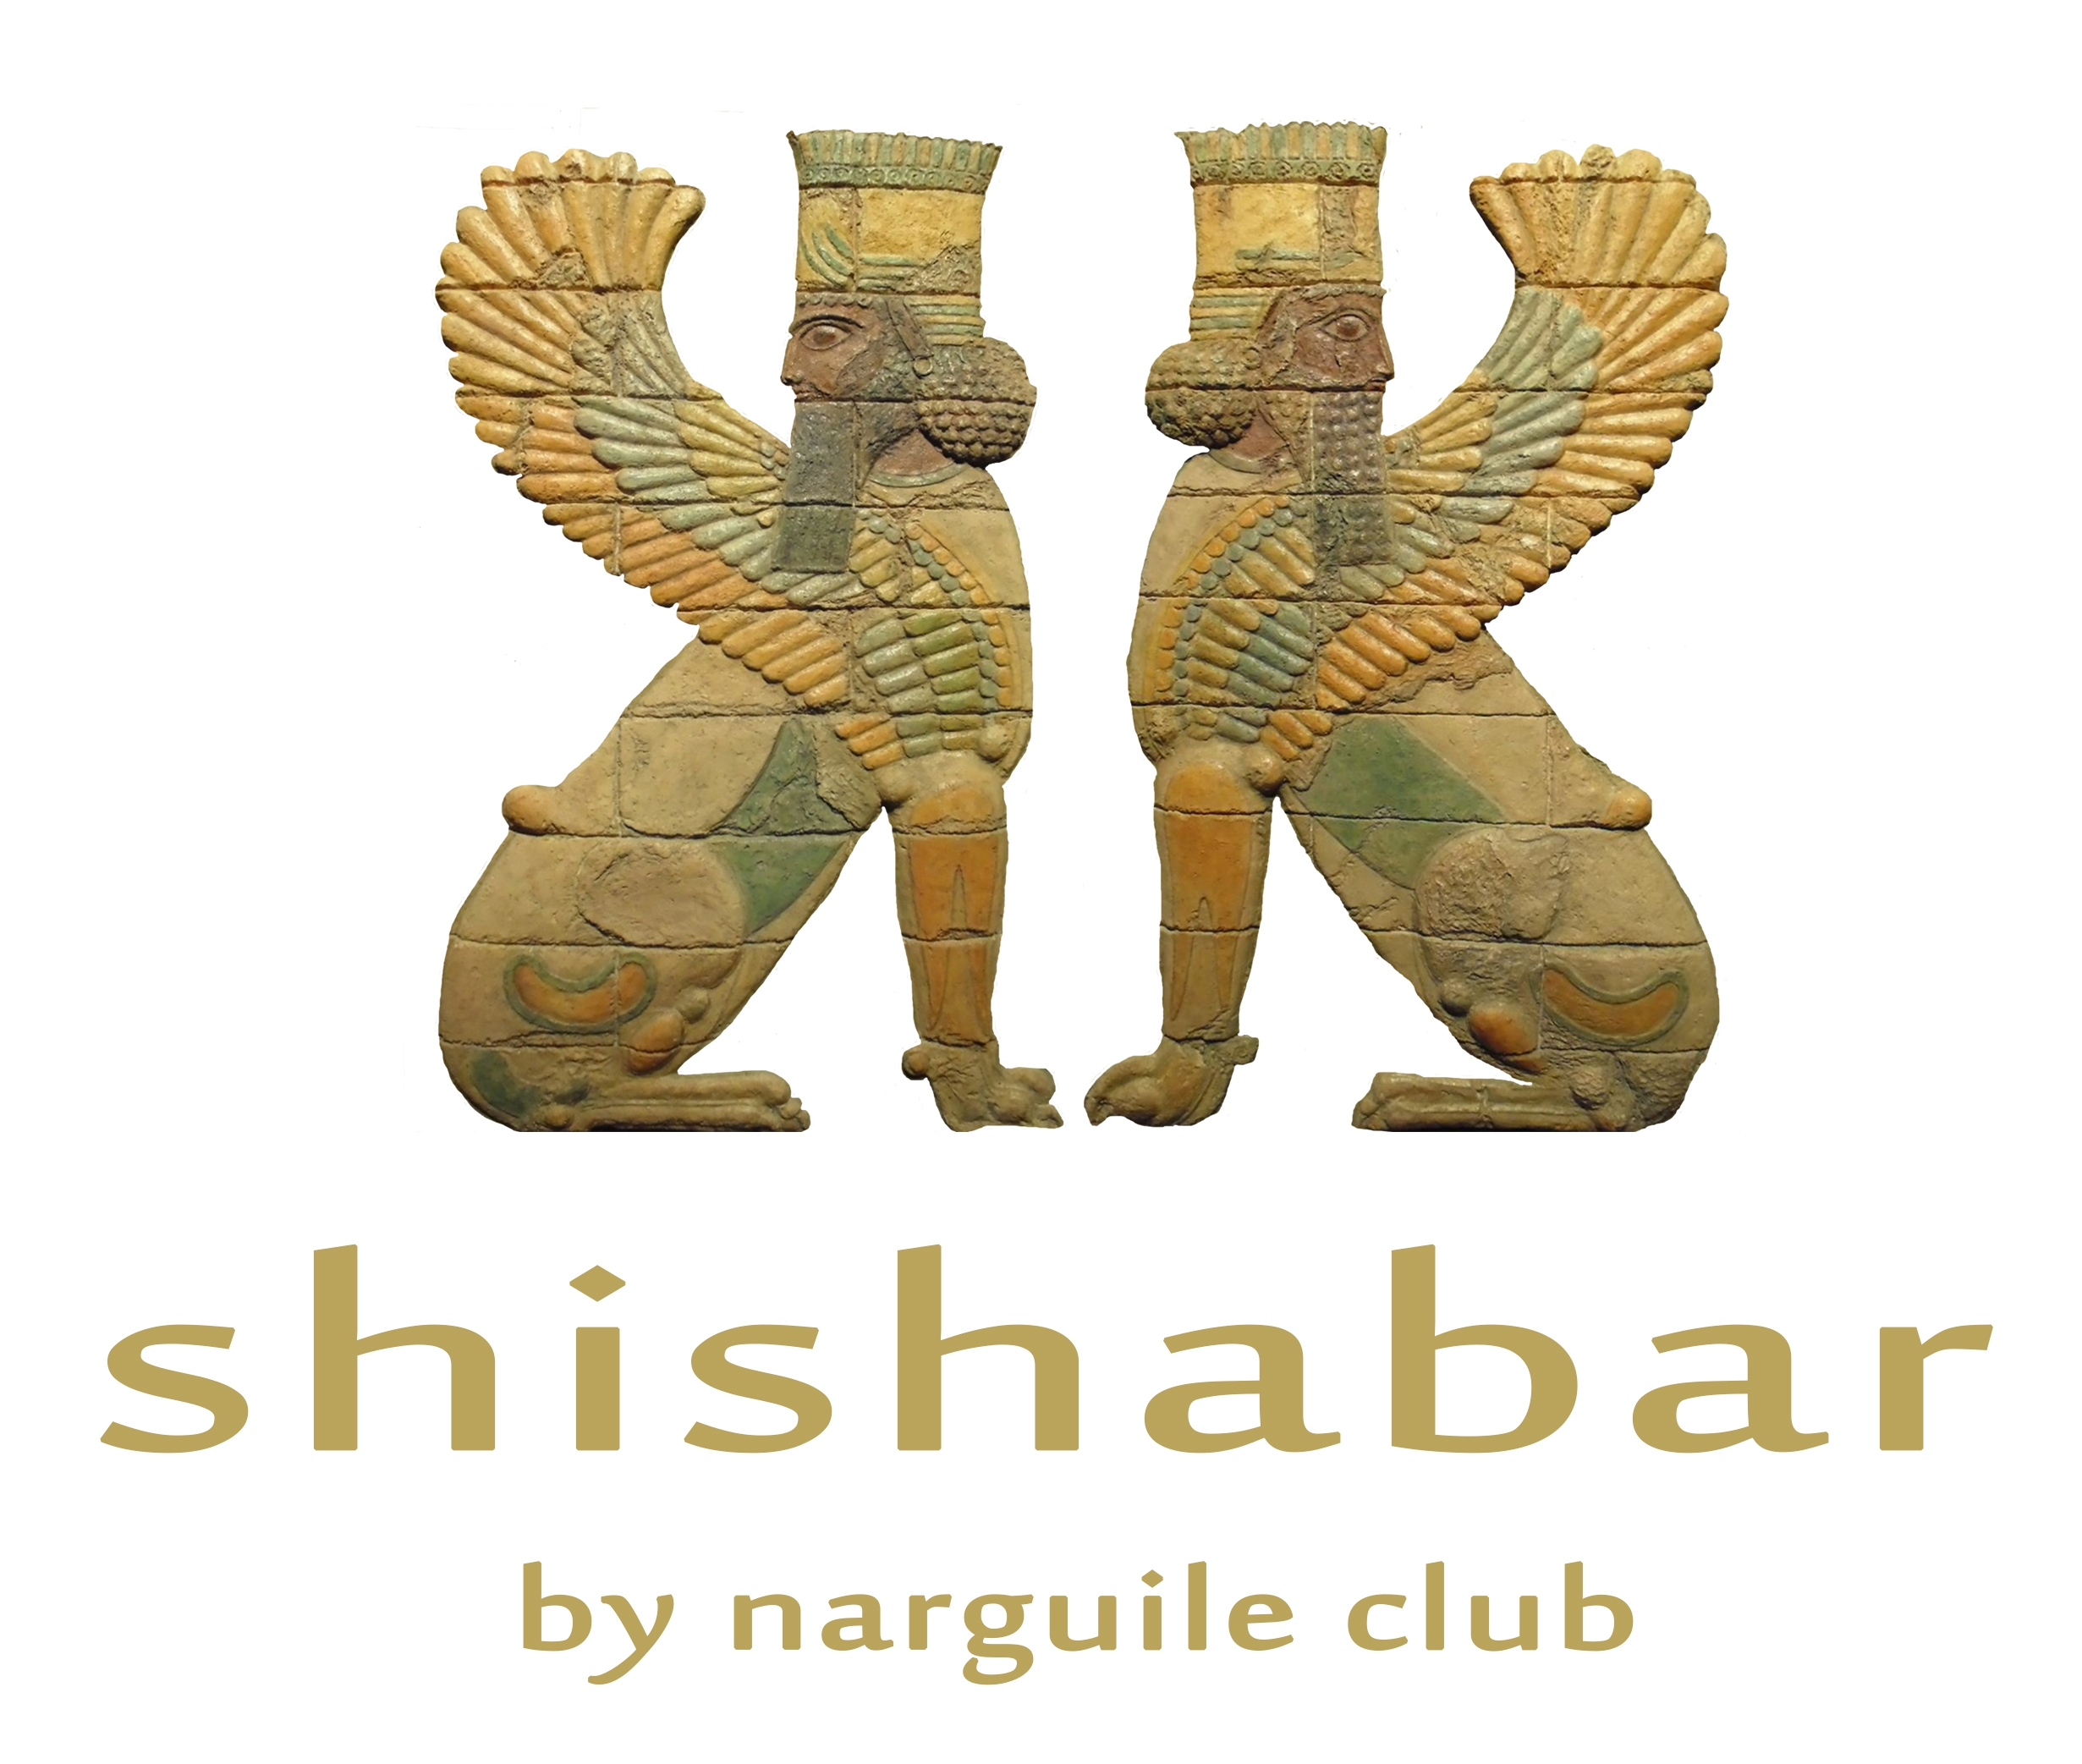 .-ShishaBar-. by Narguile Club